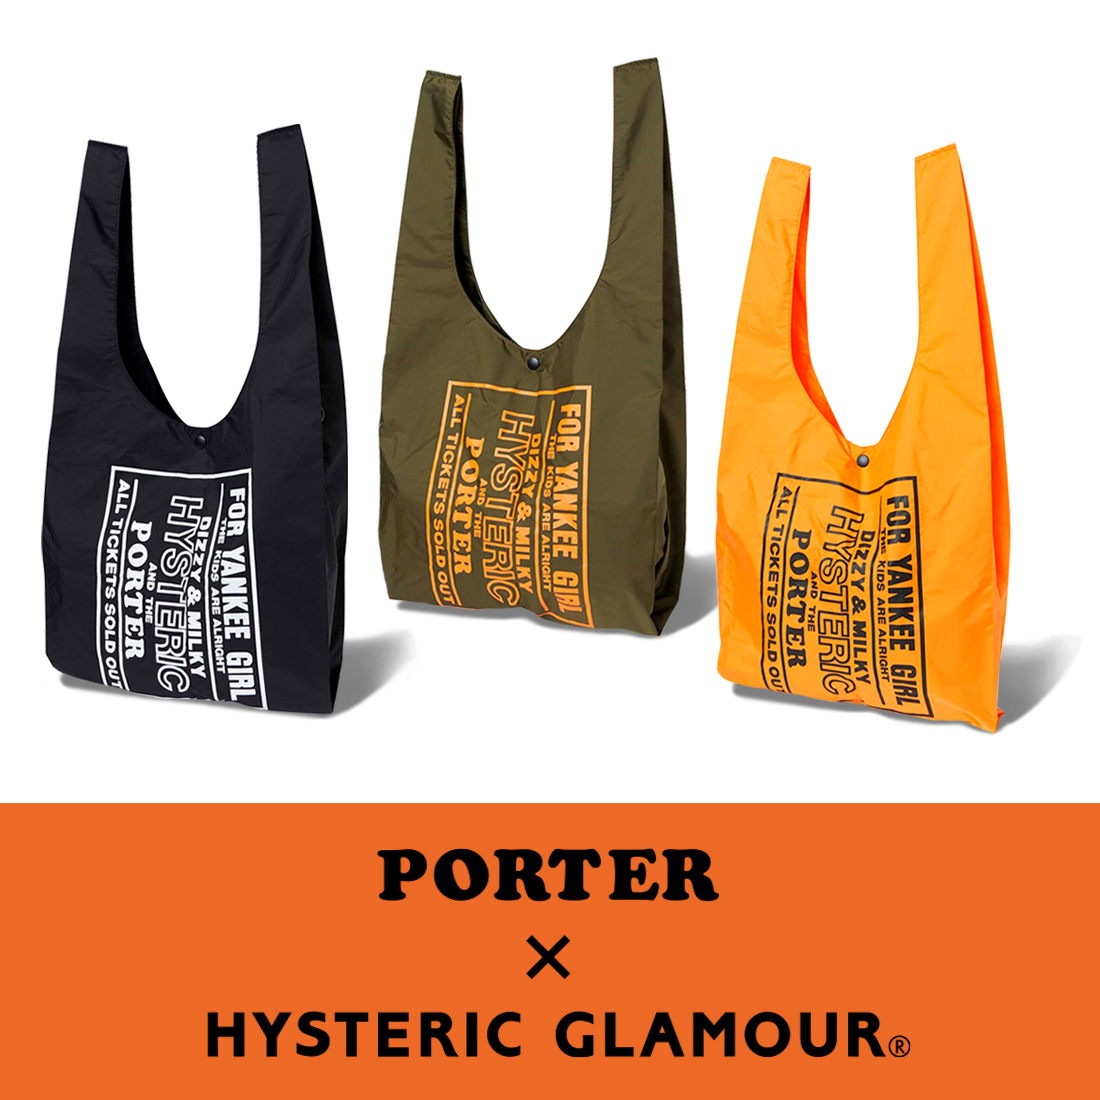 PORTER × HYSTERIC GLAMOUR